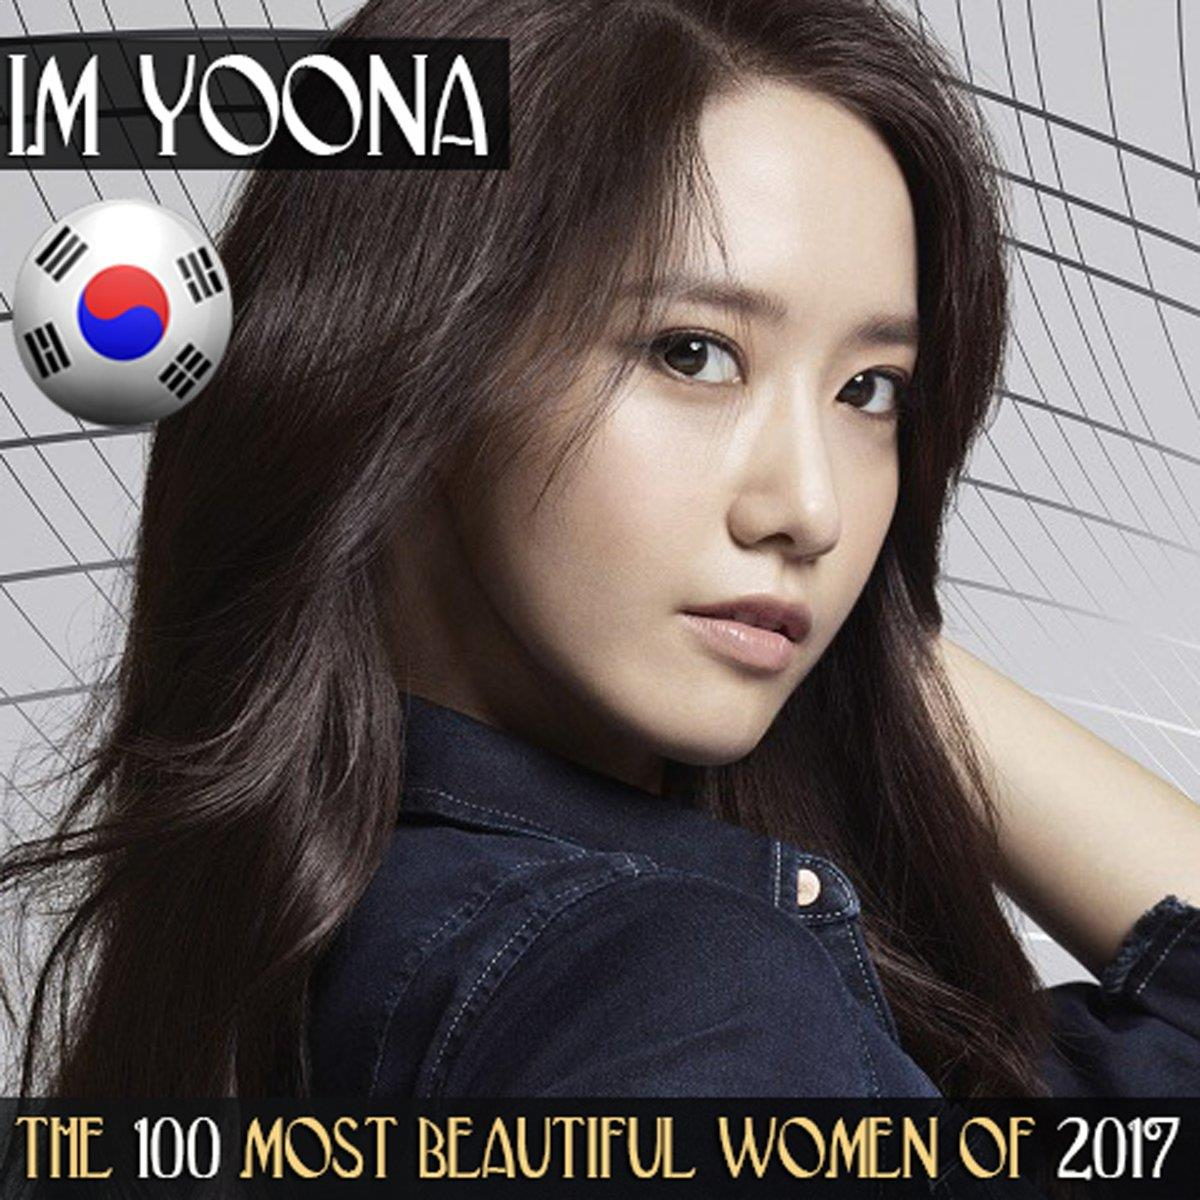 Korean Women Nominated for The 100 Most Beautiful Women of 2017